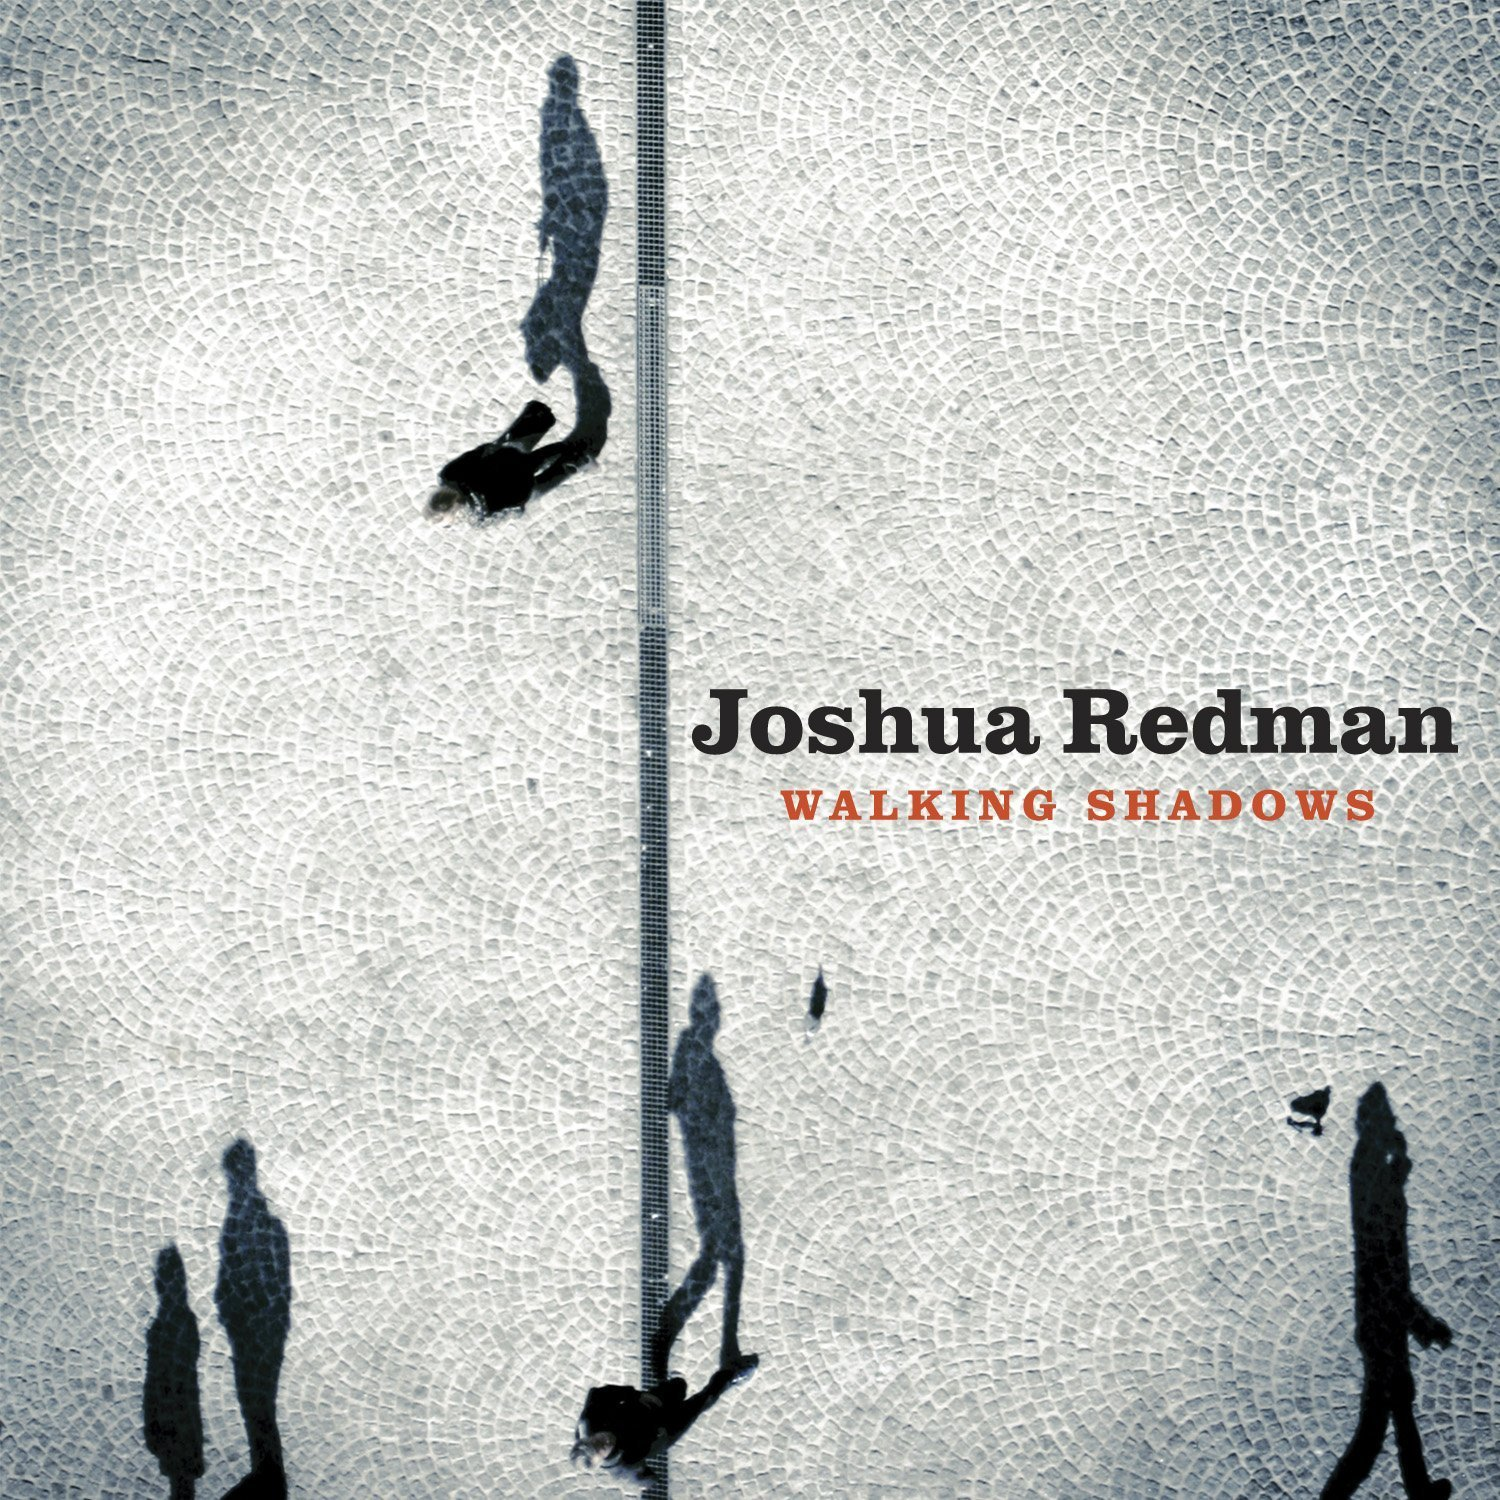 Joshua Redman - Walking Shadows cover